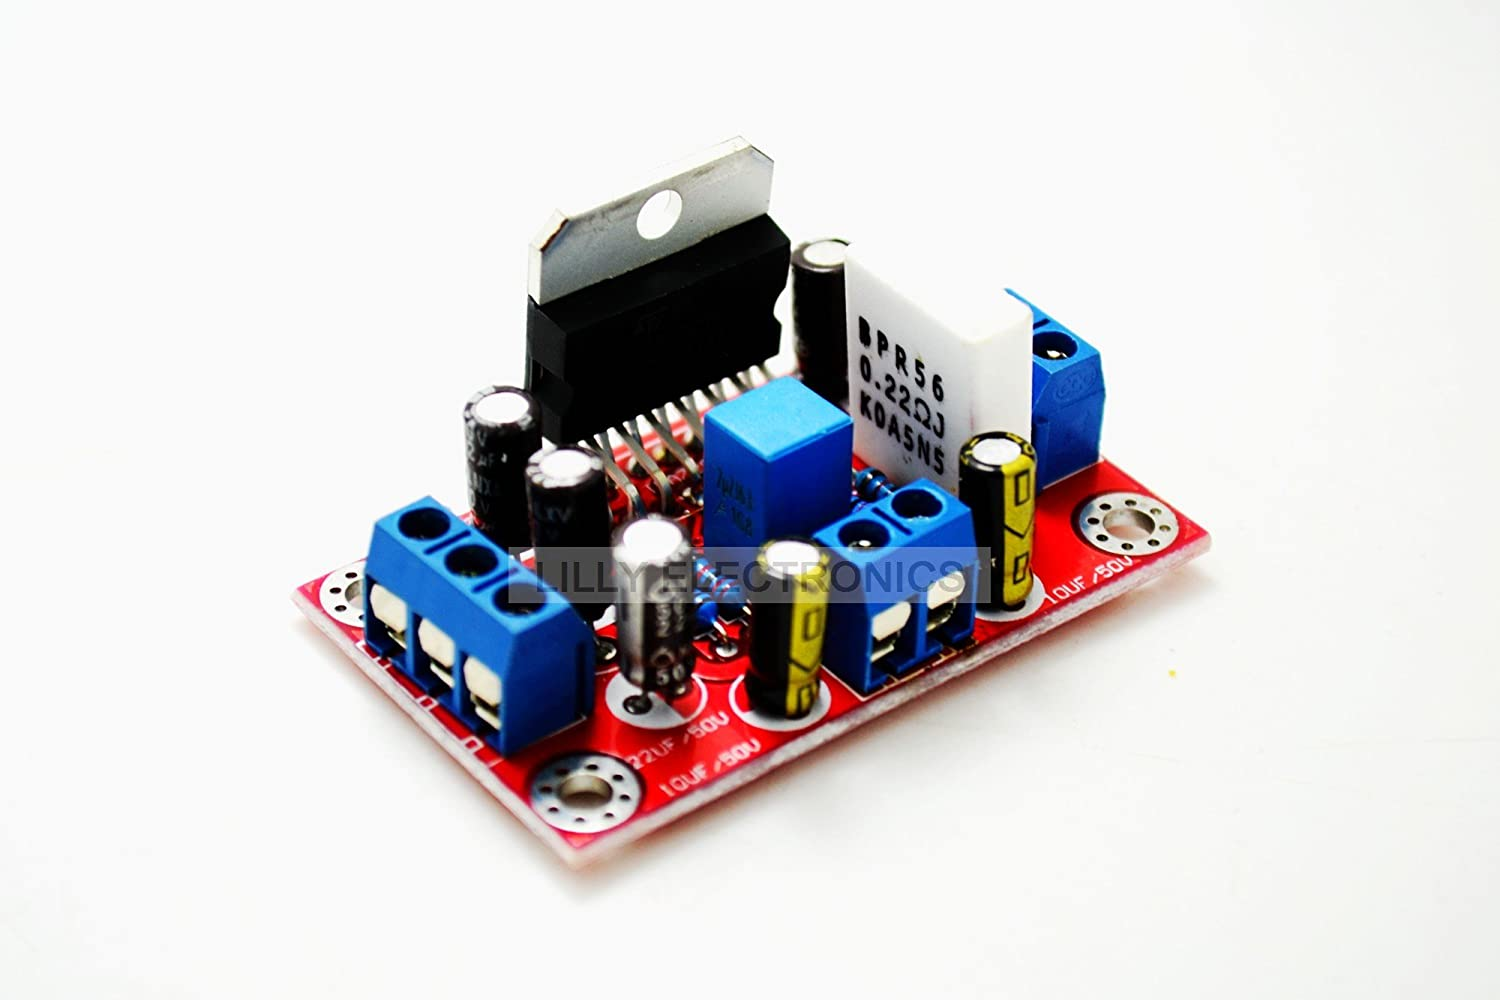 Tda7294 Mono Two Channels 85w Audio Stereo Power 60w Class Ab Amplifier Circuit With Board Amp Car Electronics